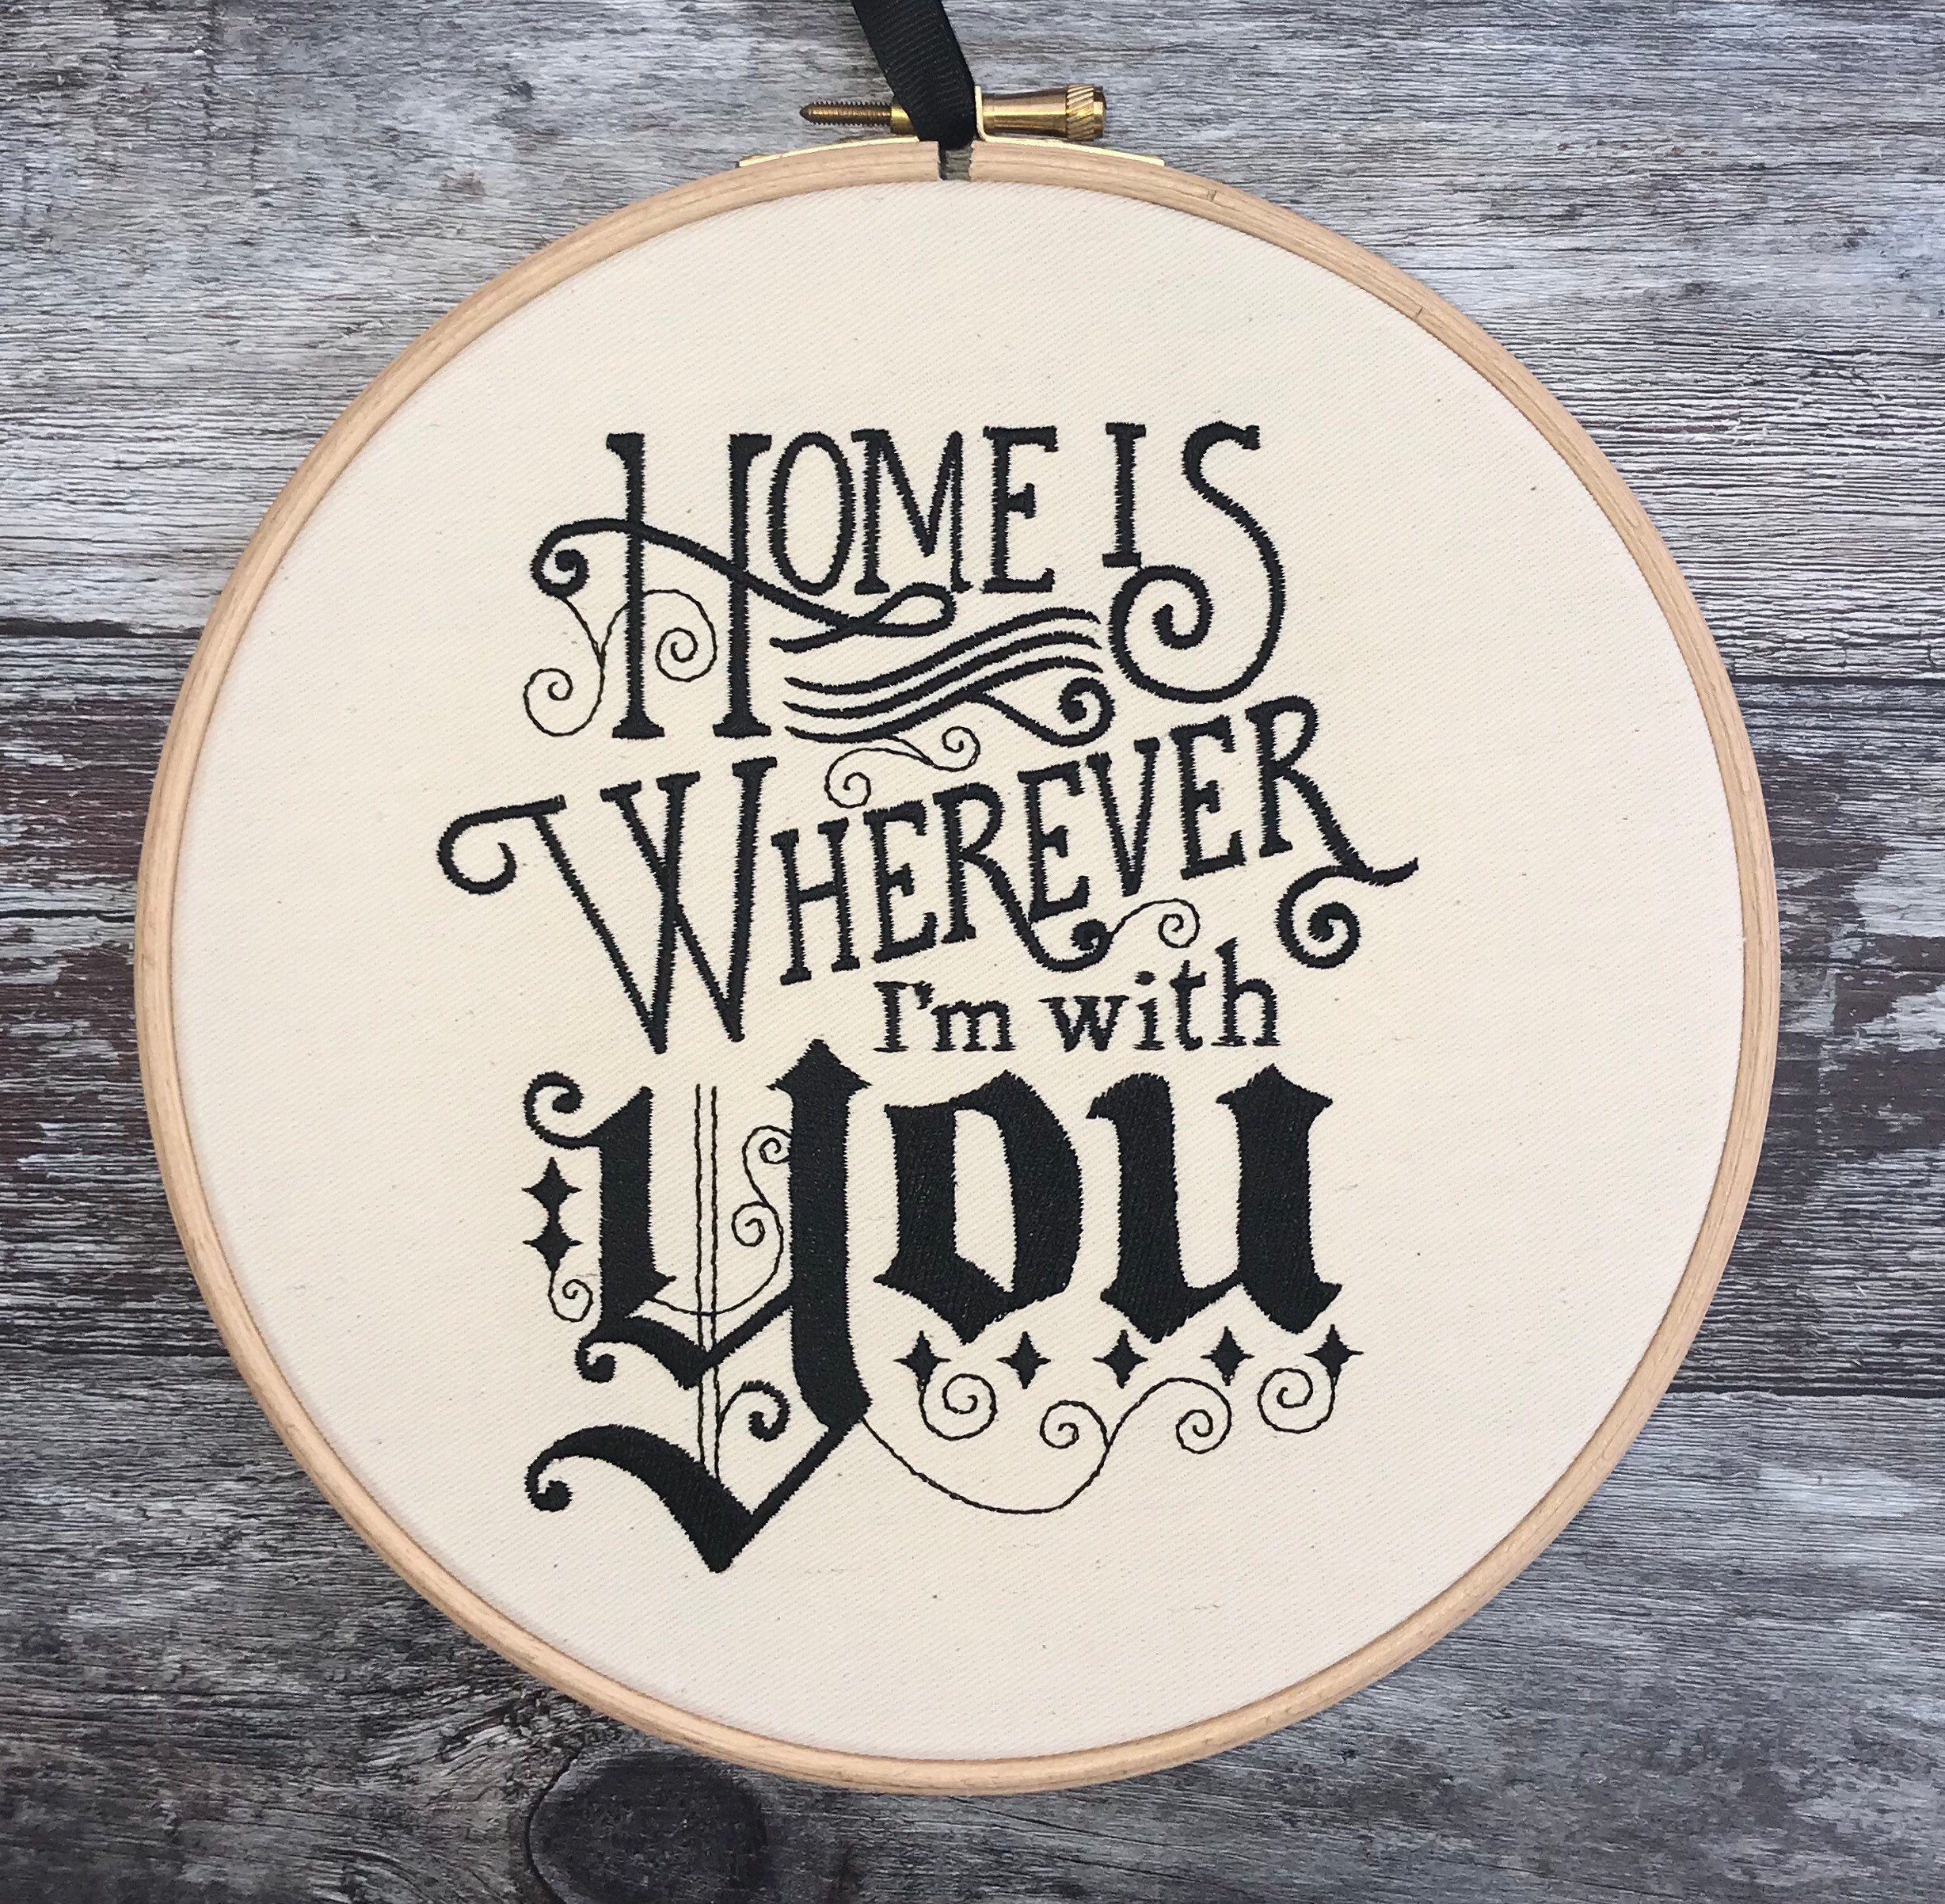 Home is wherever I'm with you, Embroidery hoop art